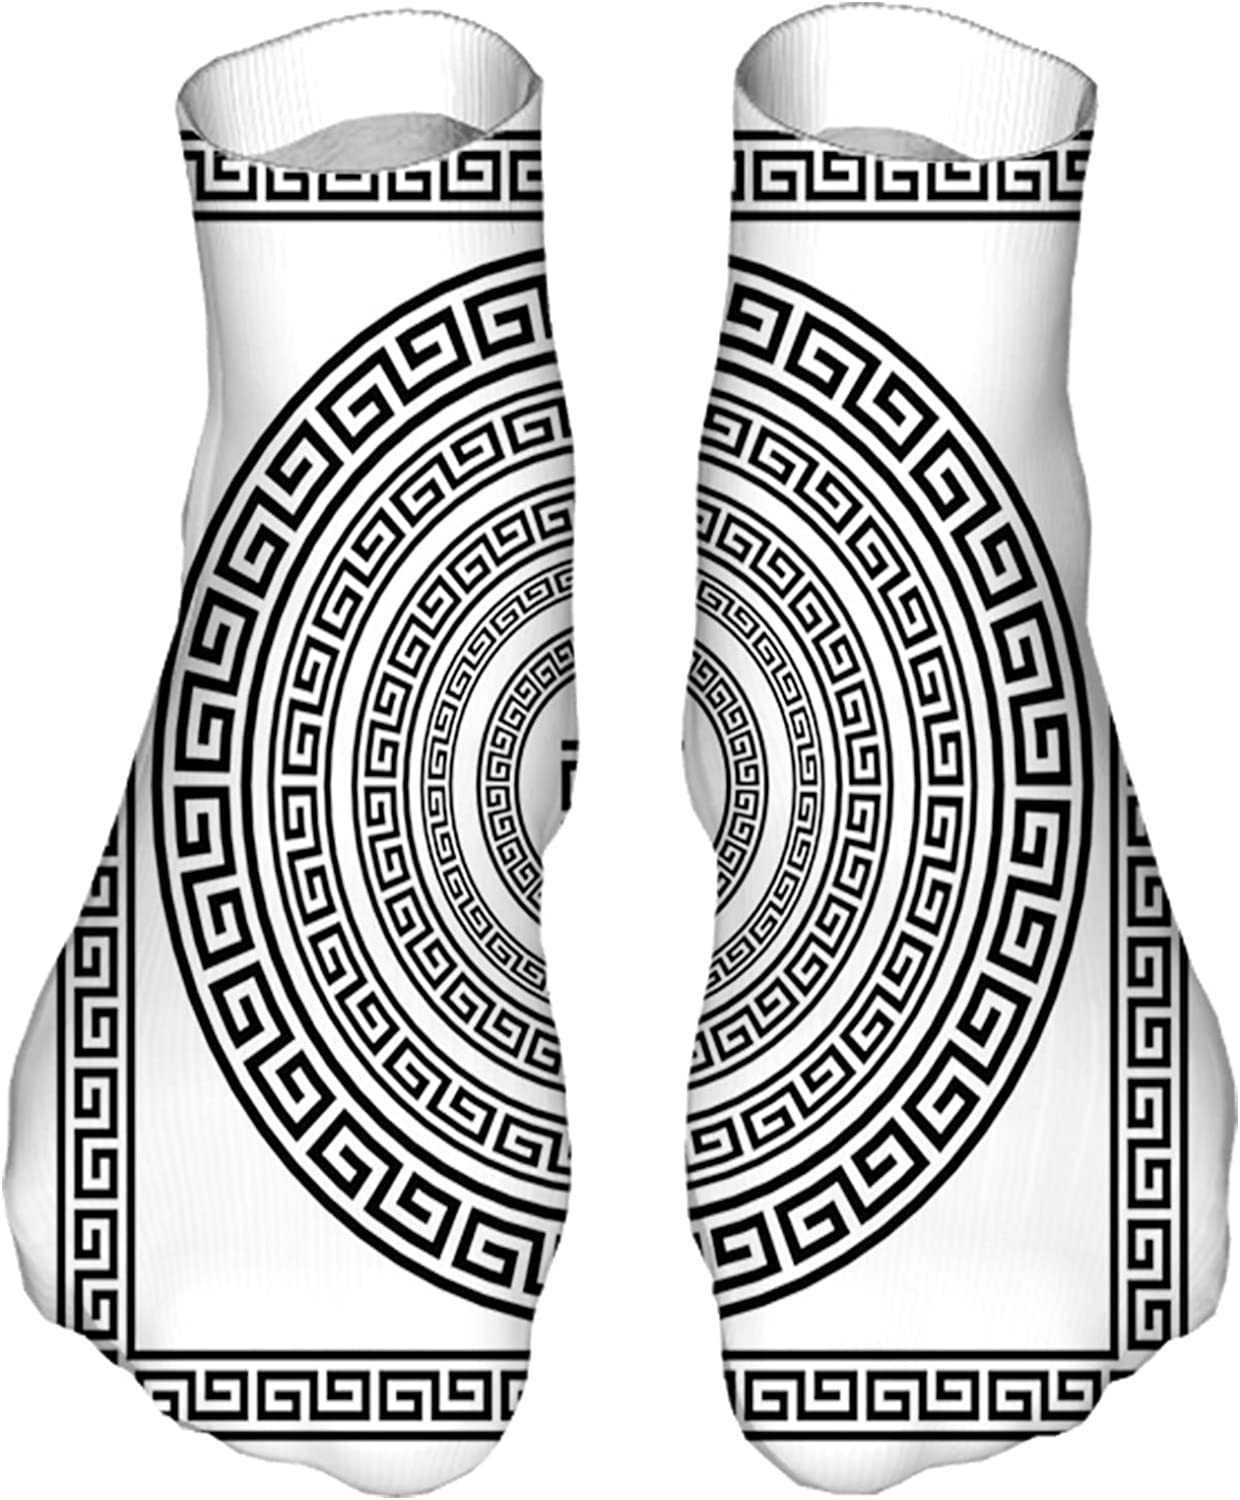 Men's and Women's Funny Casual Socks Traditional Meander Border Set with Square and Circles